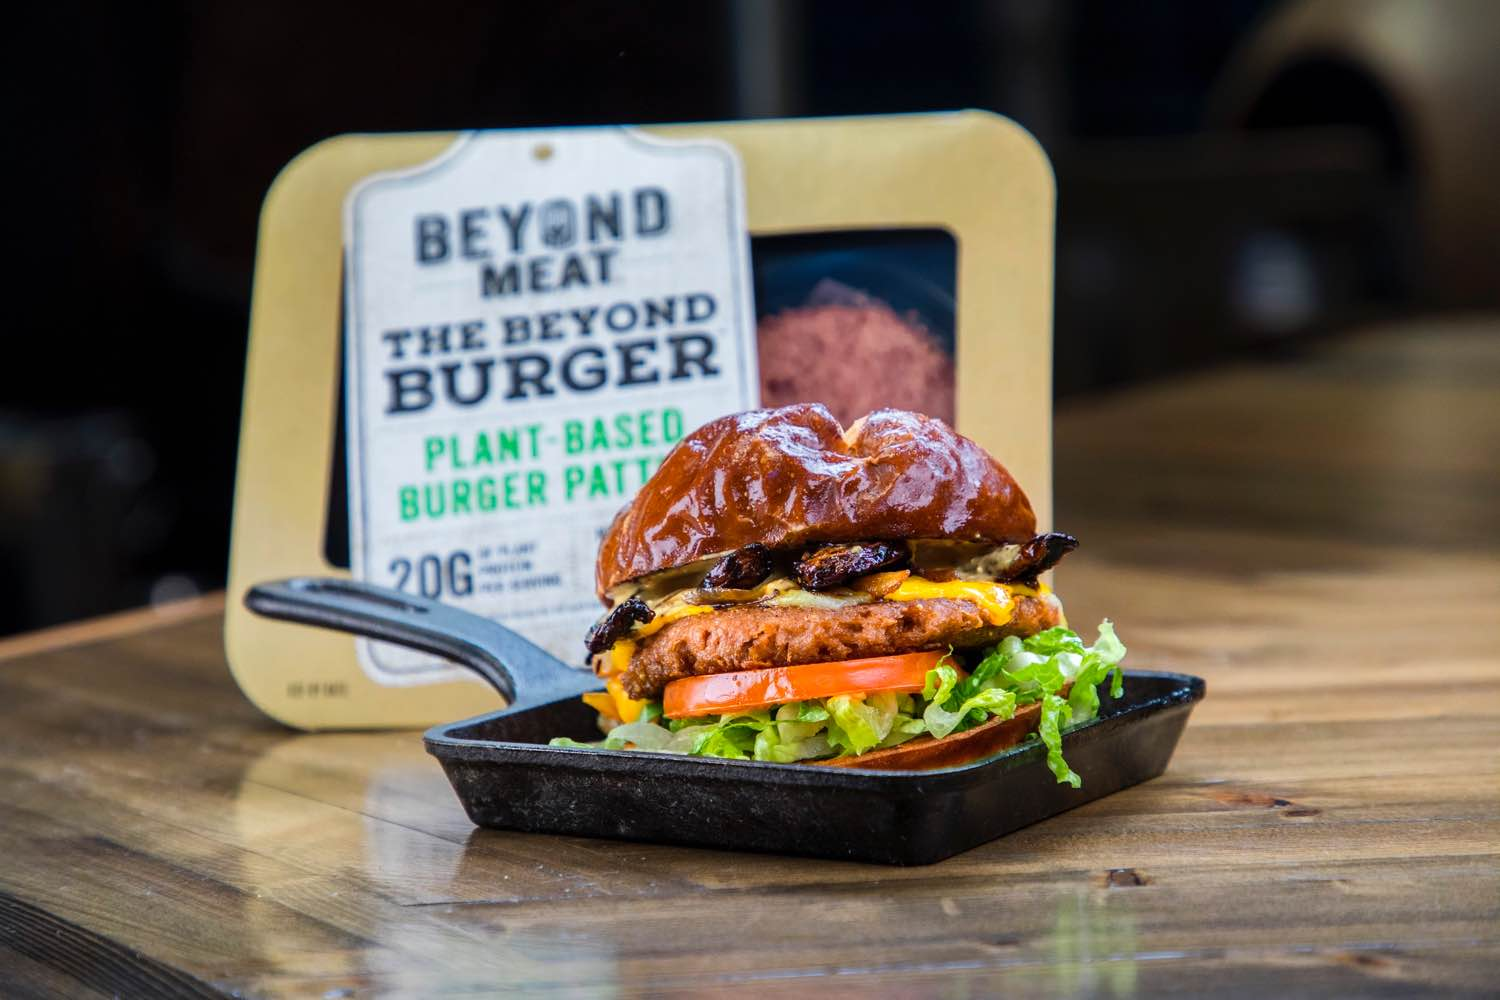 Image for article Congratulations Beyond Meat, The Future of Protein™